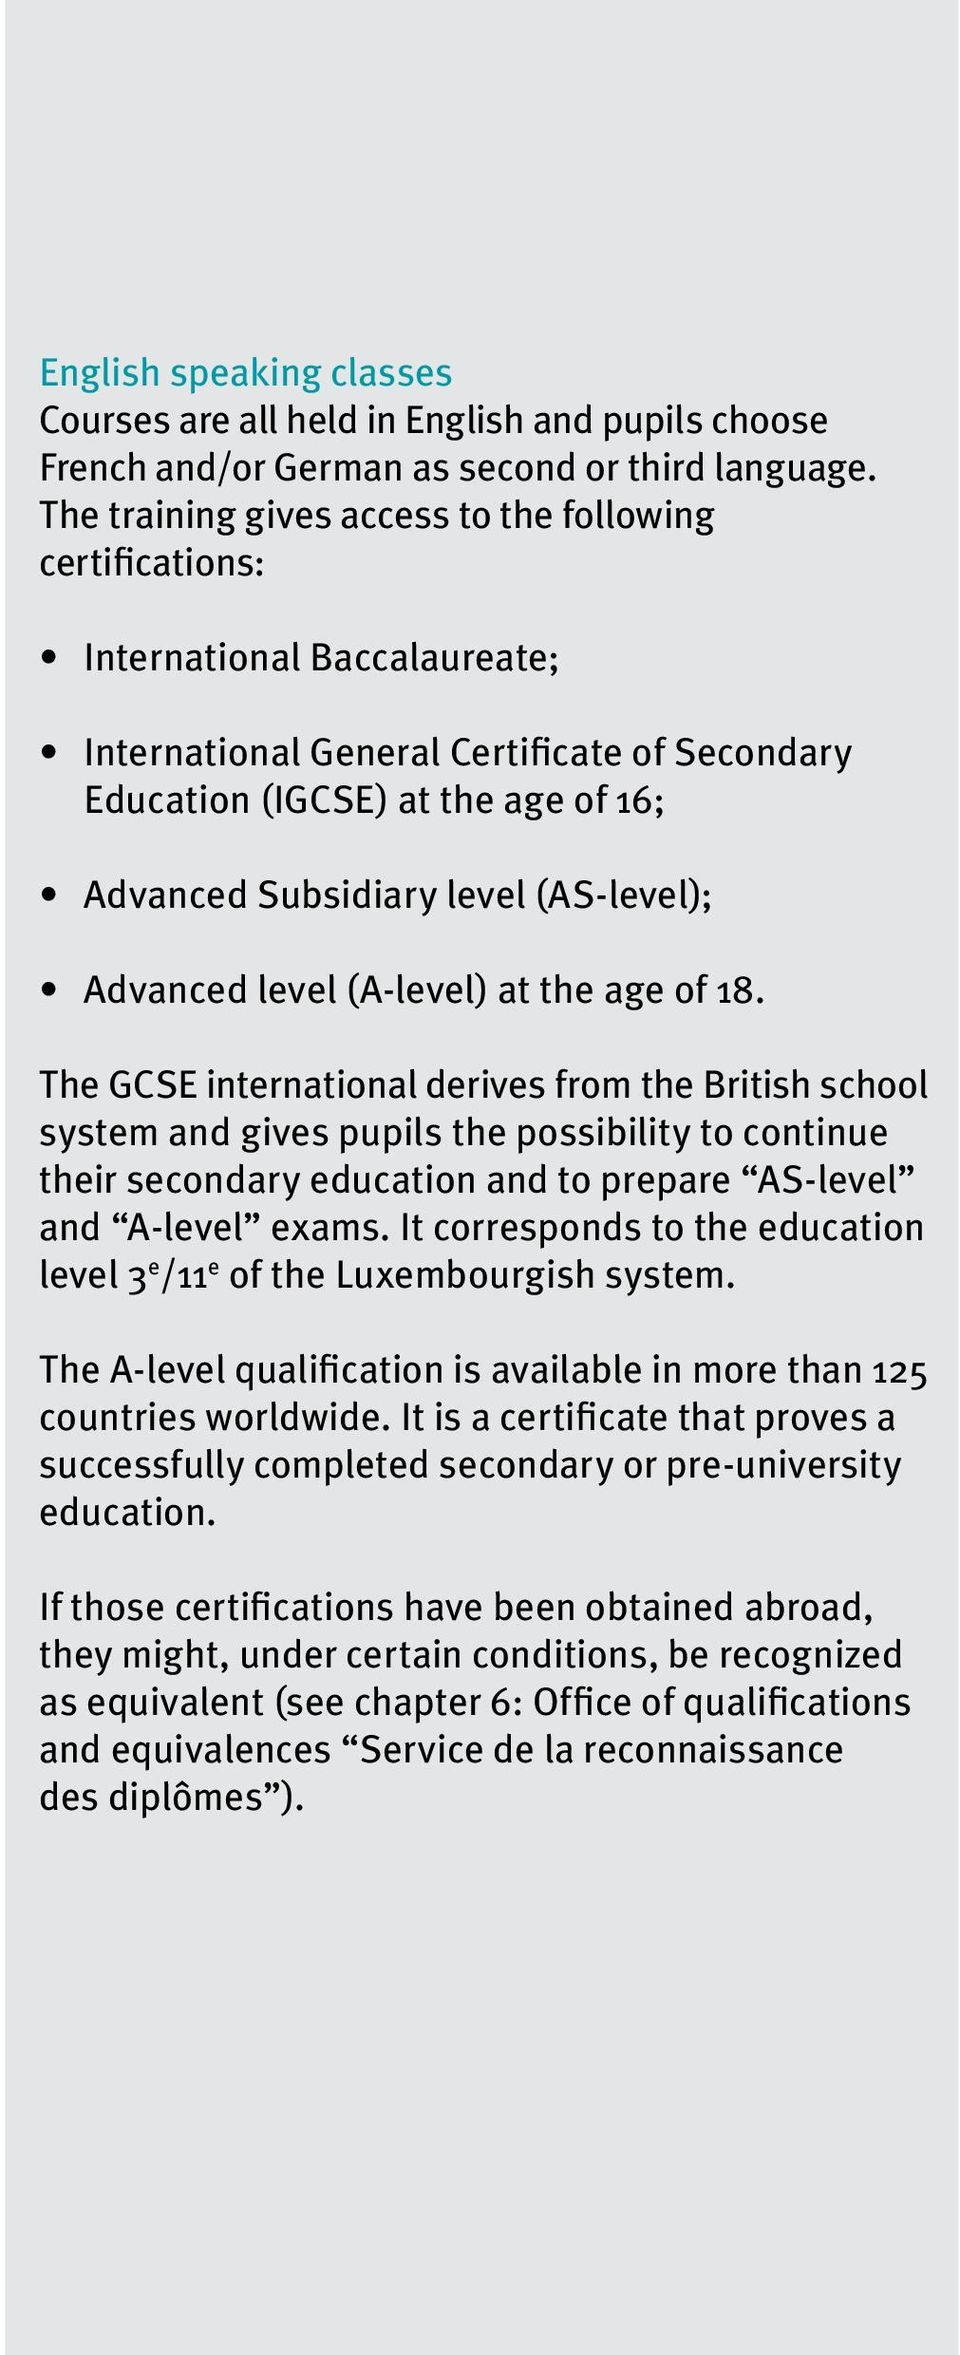 (AS-level); Advanced level (A-level) at the age of 18.